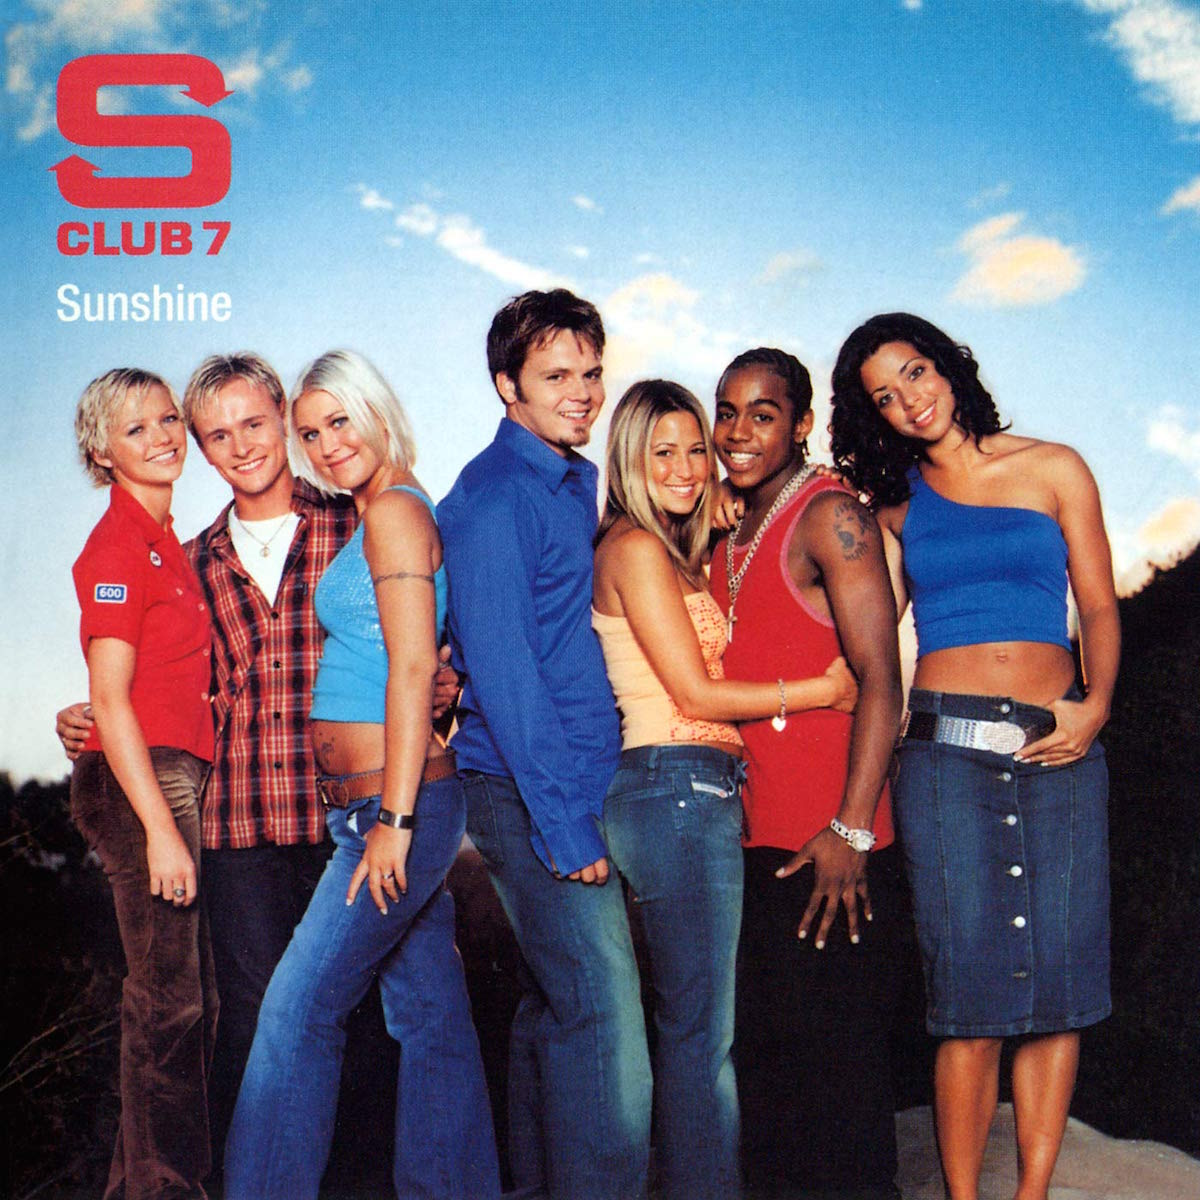 S Club 7 - Sunshine (2001) album